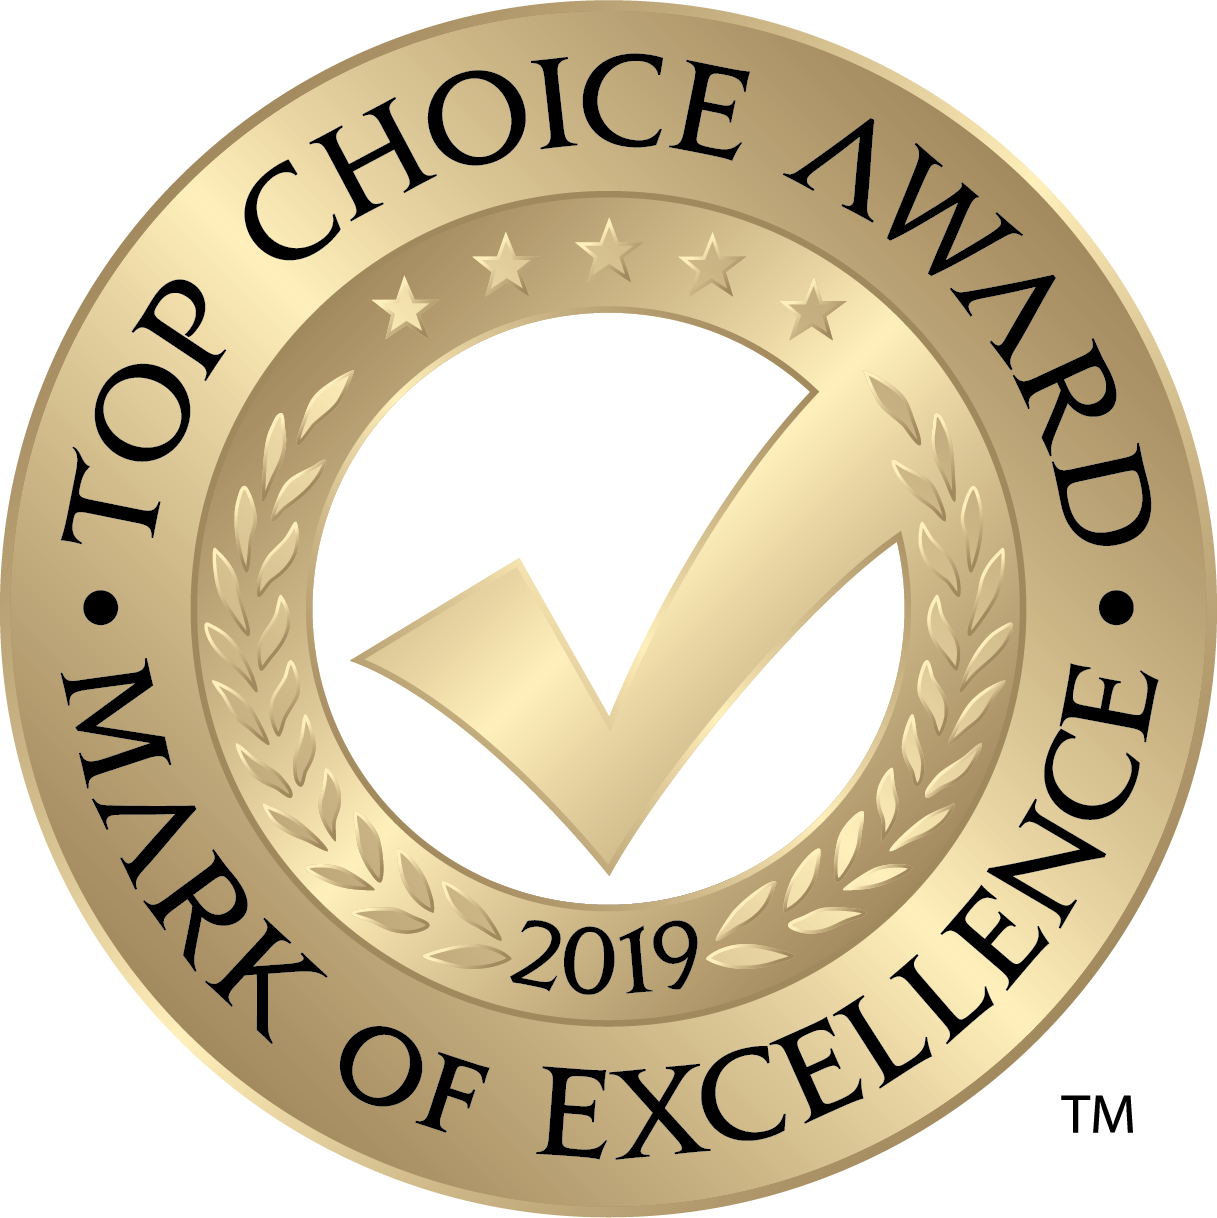 TopChoiceAwards_logo_year_2019_Colour